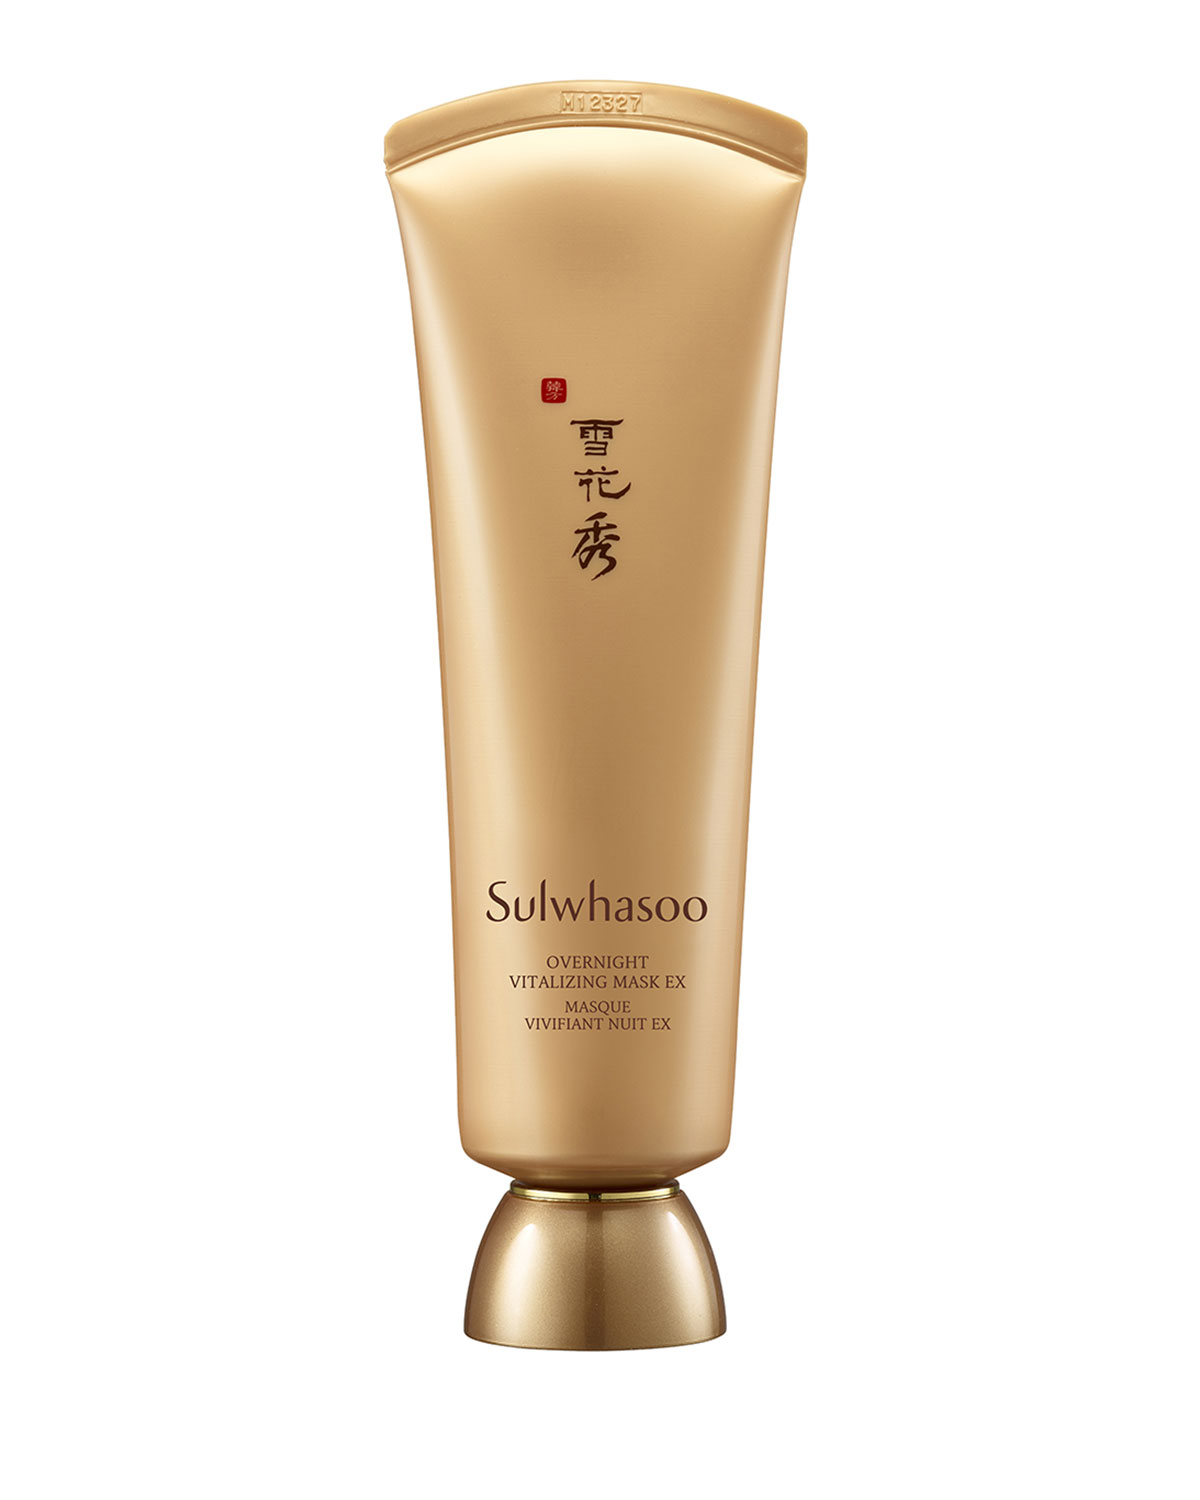 Overnight Vitalizing Mask, 4.0 oz. - Sulwhasoo